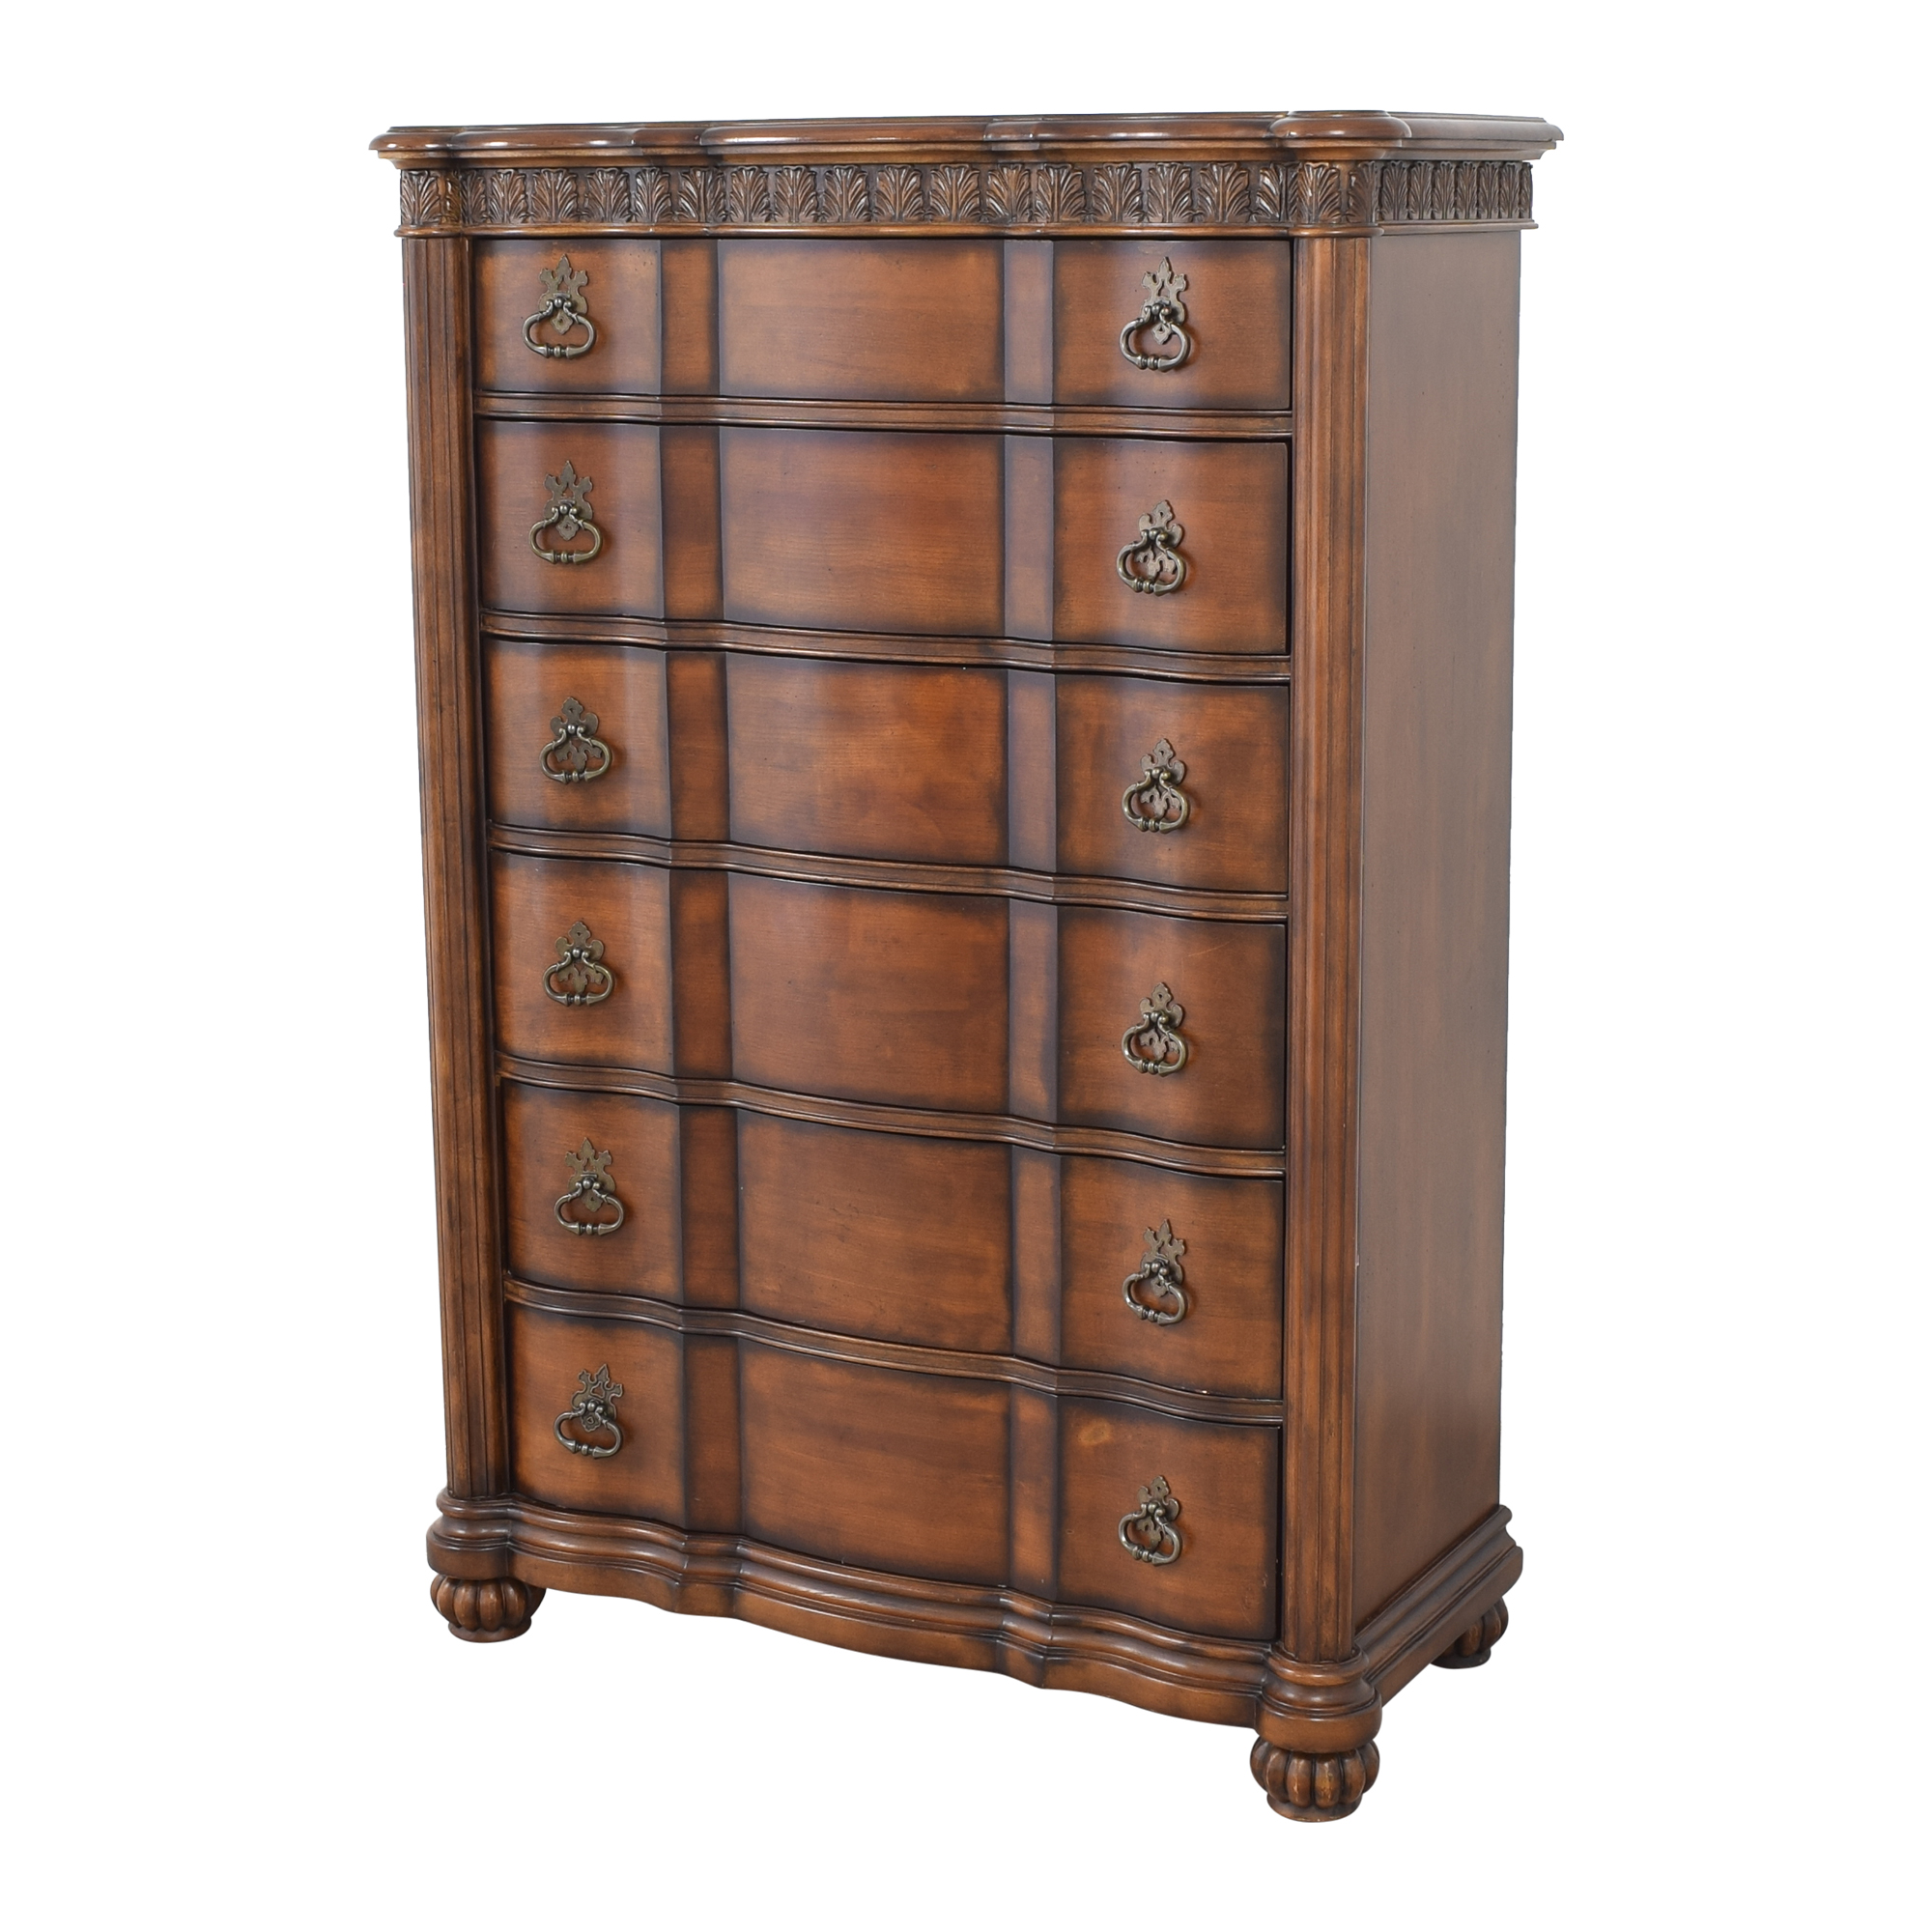 Pulaski Furniture Pulaski Six Drawer Grand Ornate Dresser second hand